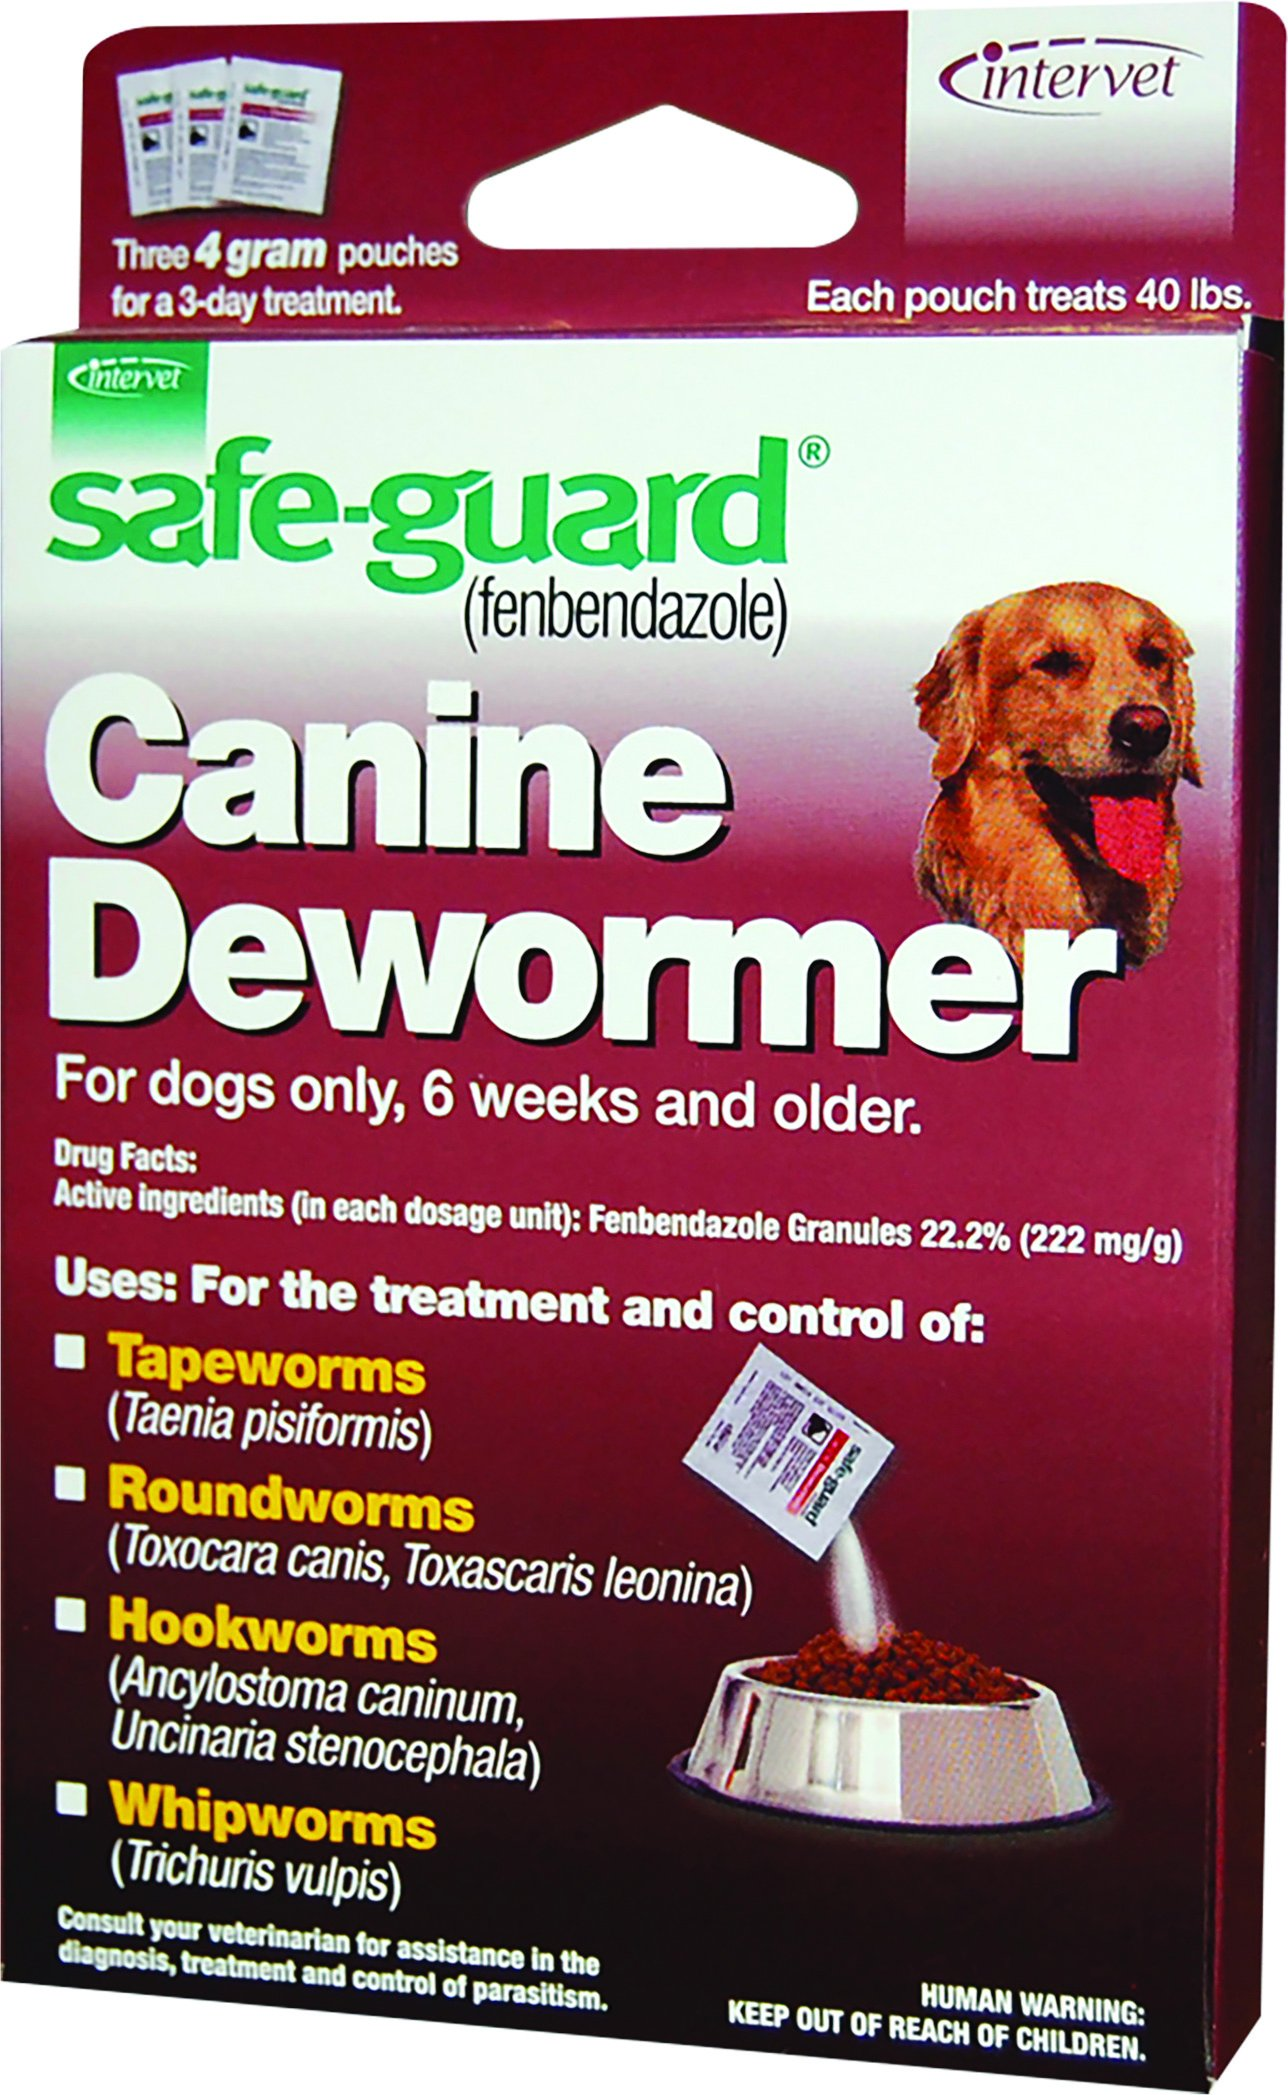 Safeguard Dog Dewormer (With images) Deworming dogs, Pet